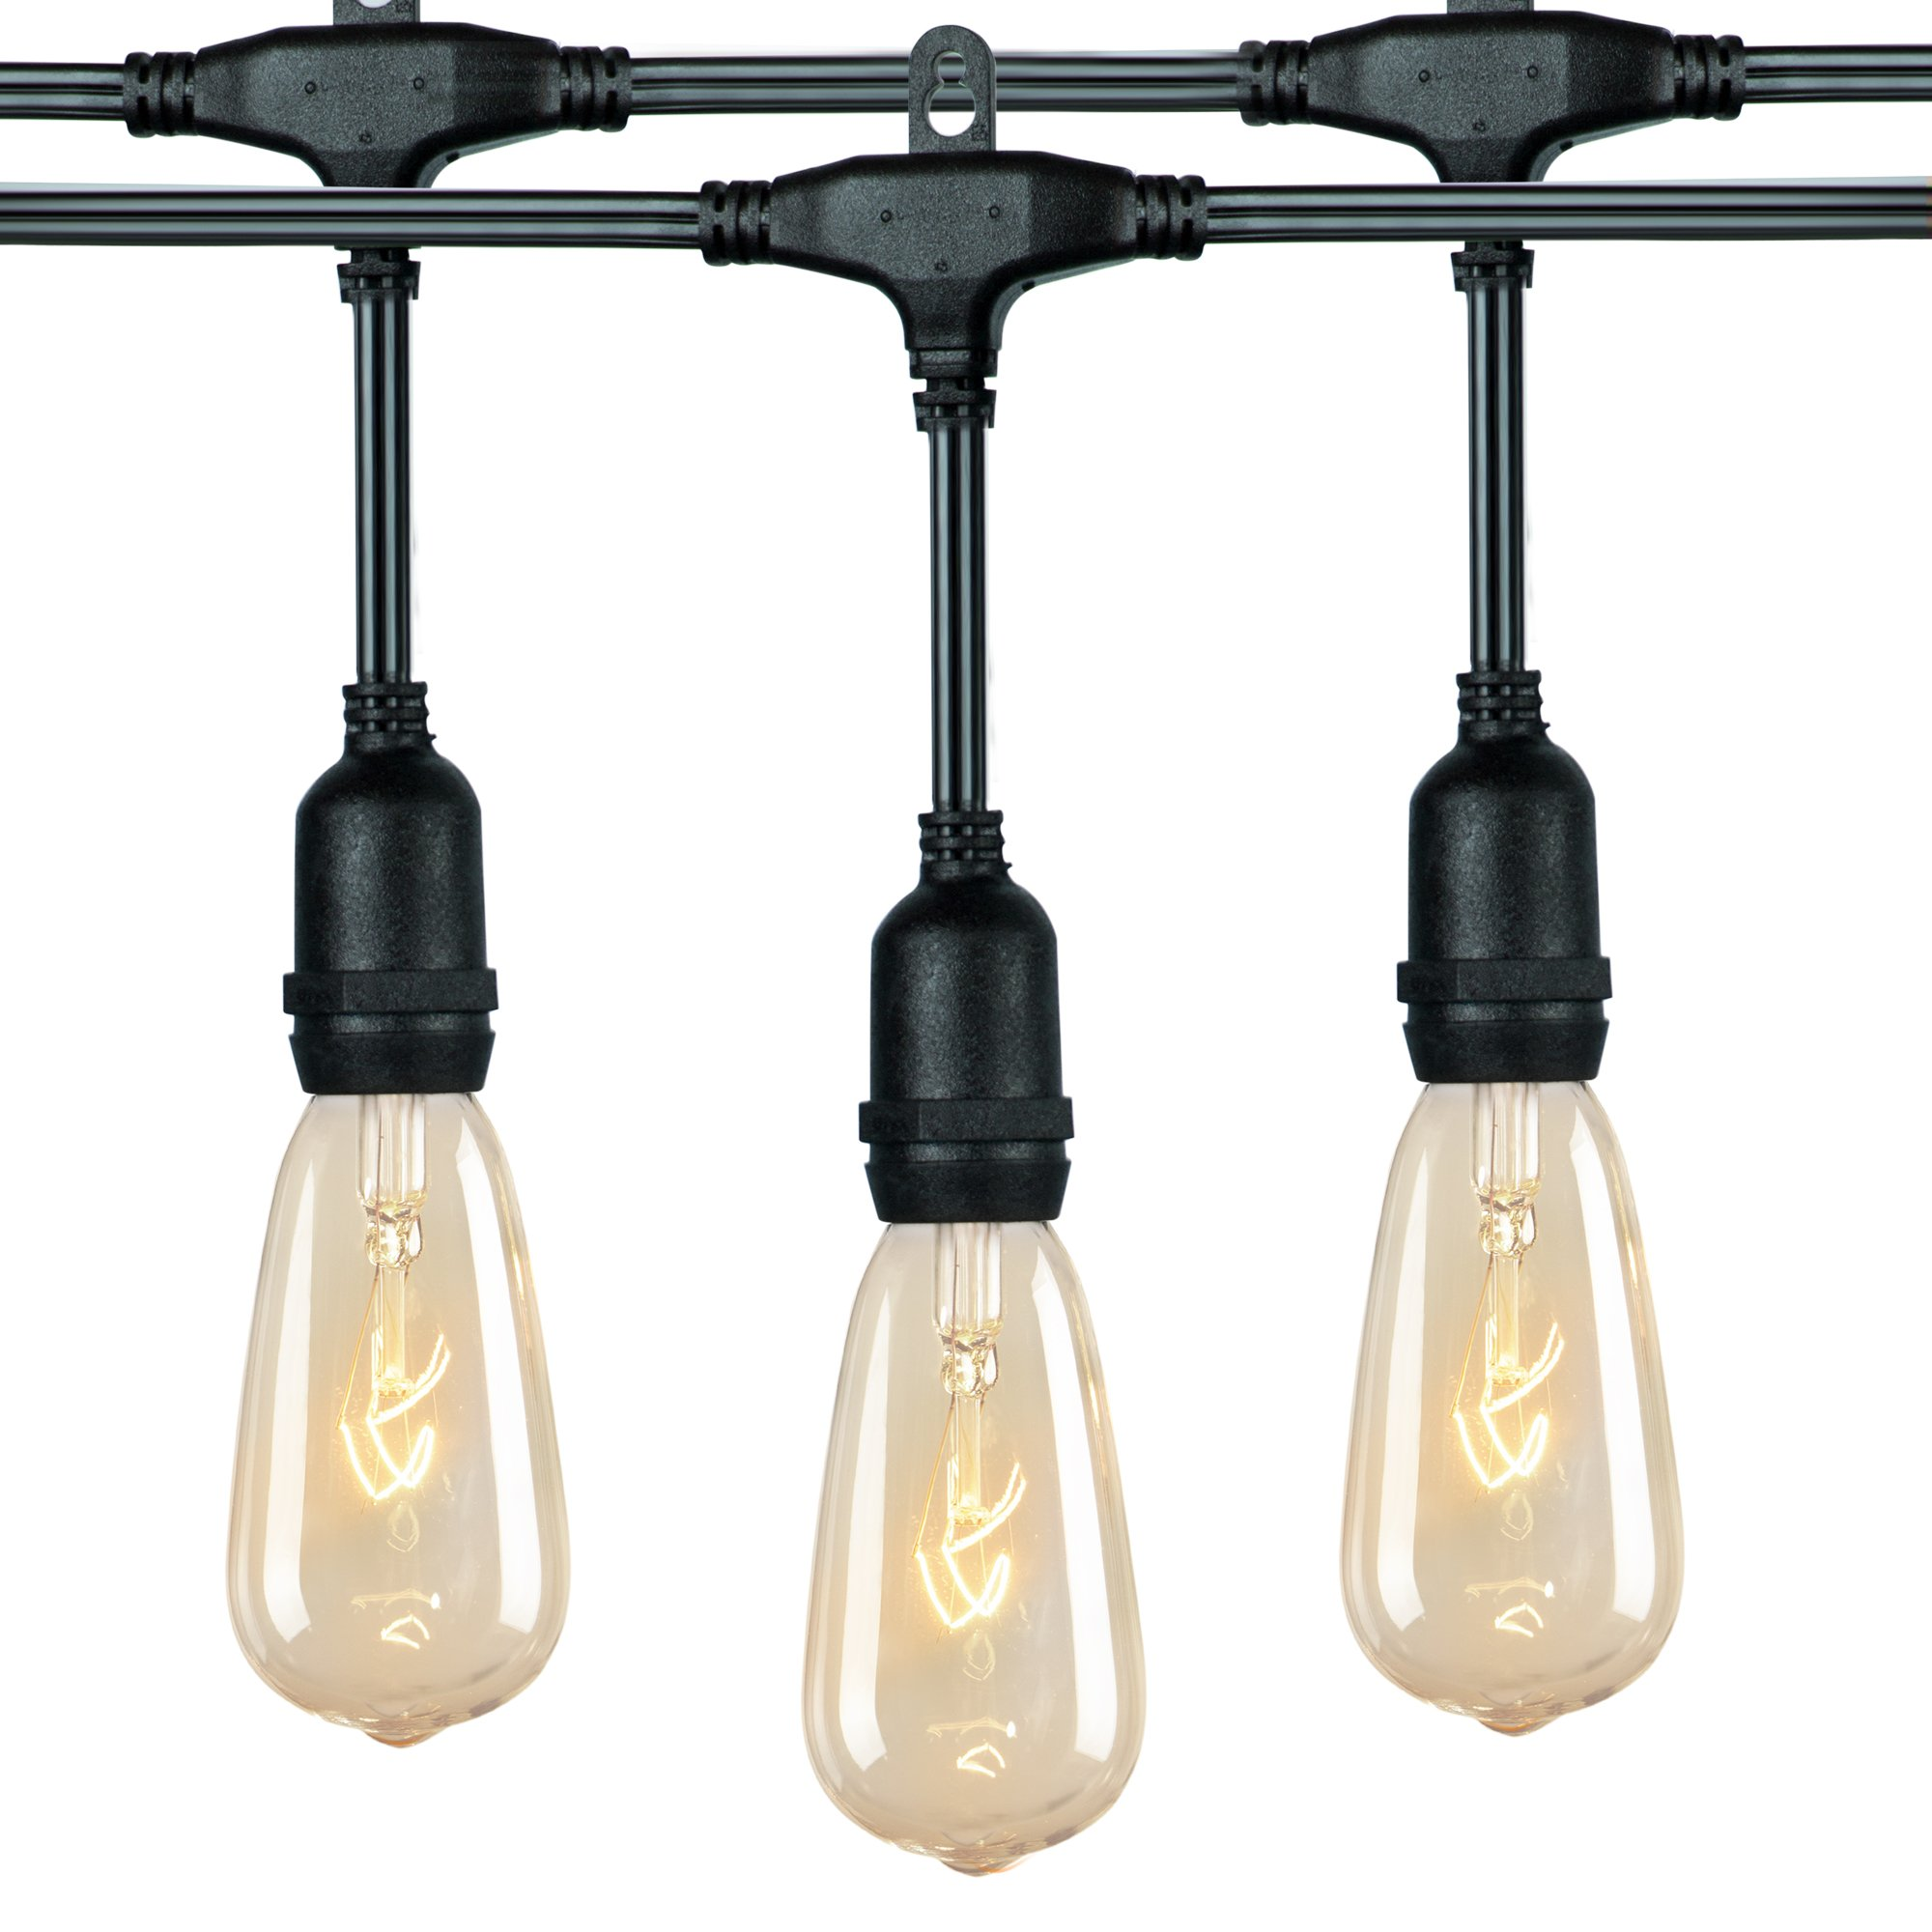 36 Ft. Outdoor Patio String Lights with 24 x E26 Hanging Sockets & 7 Watt ST40 Clear Bulbs, Weatherproof Vintage Edison Light for Garden, Porches, Bistro, Backyard, Market, Café and Party Décor, Black